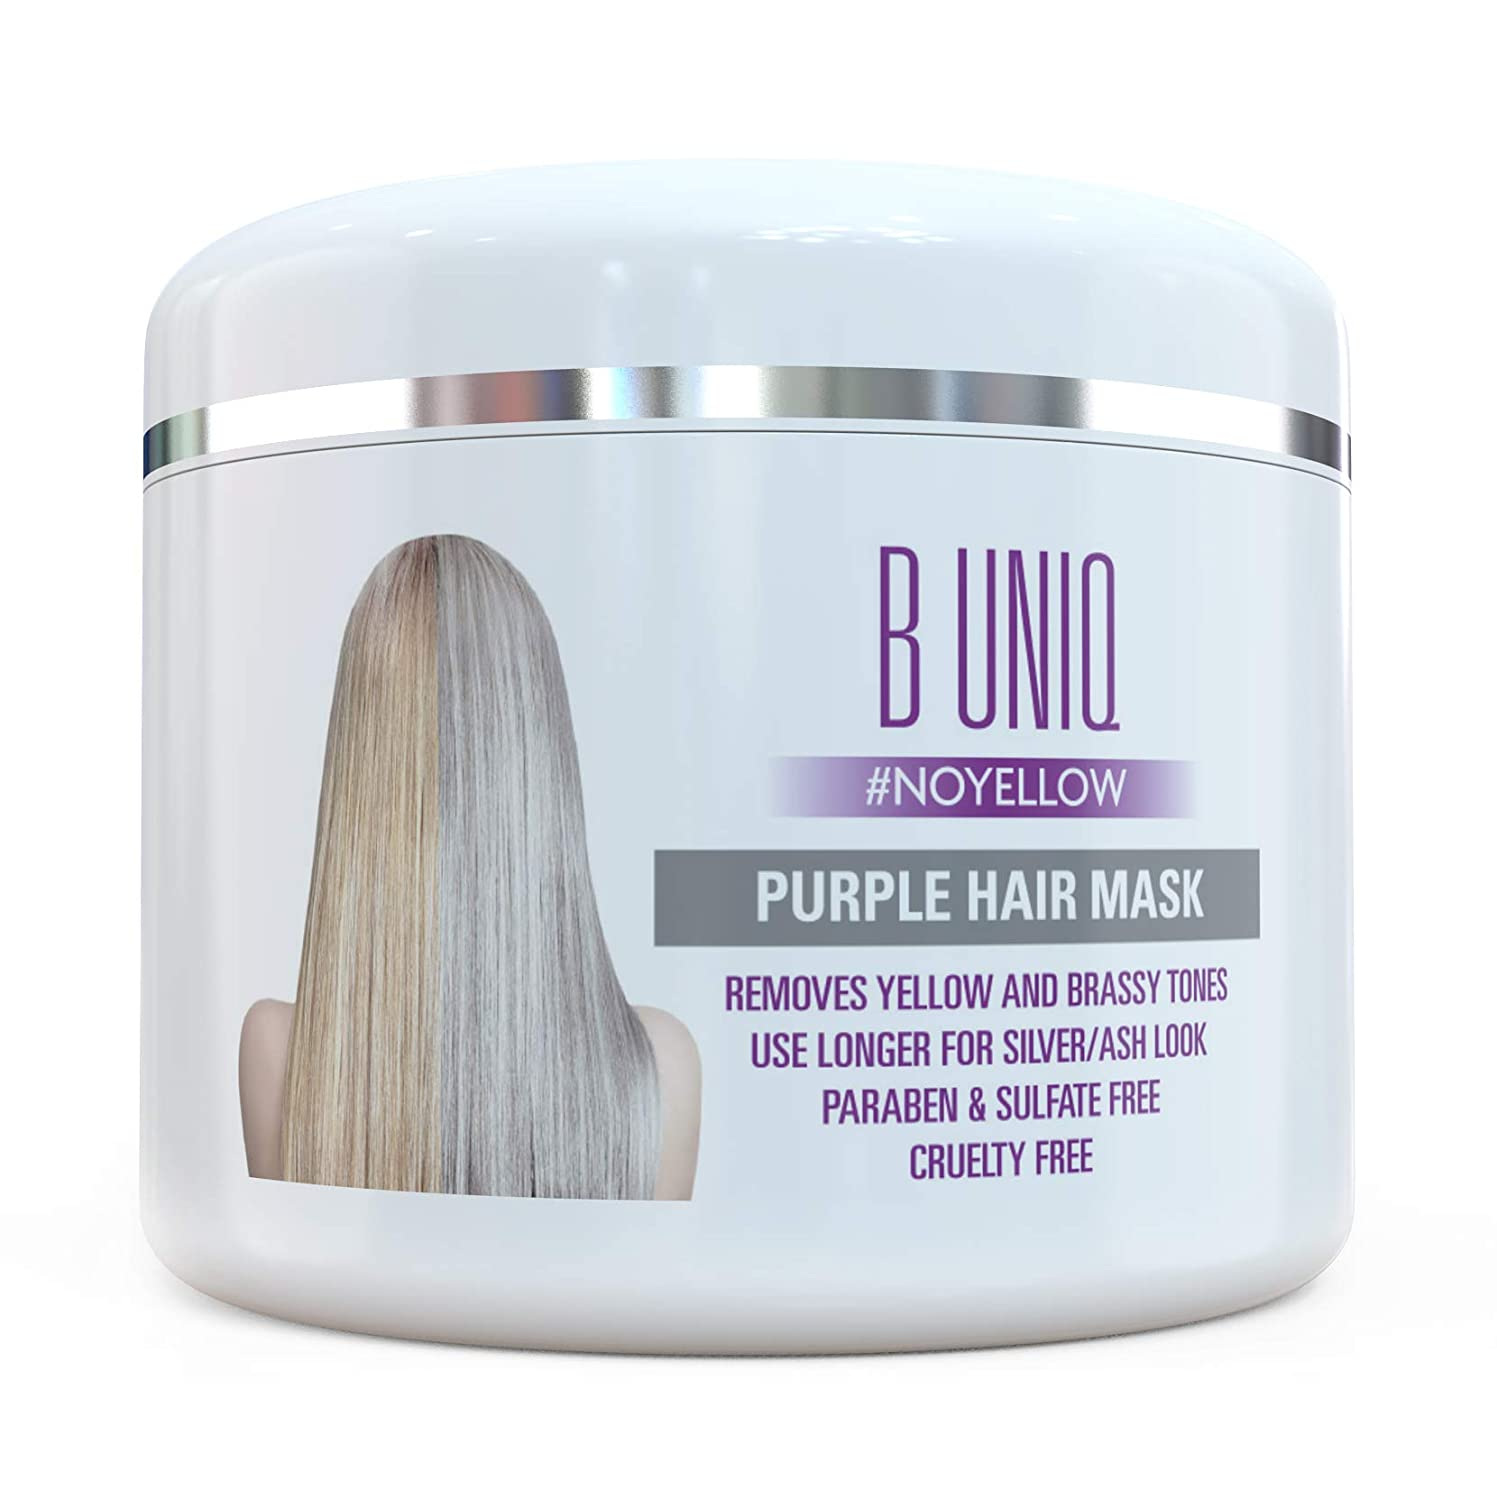 Purple Hair Mask For Blonde, Platinum & Silver Hair - No Yellow: Blue Masque to Reduce Brassiness & Condition Dry Damaged Hair - Sulfate Free Toner - 215 ml Second Glance Beauty